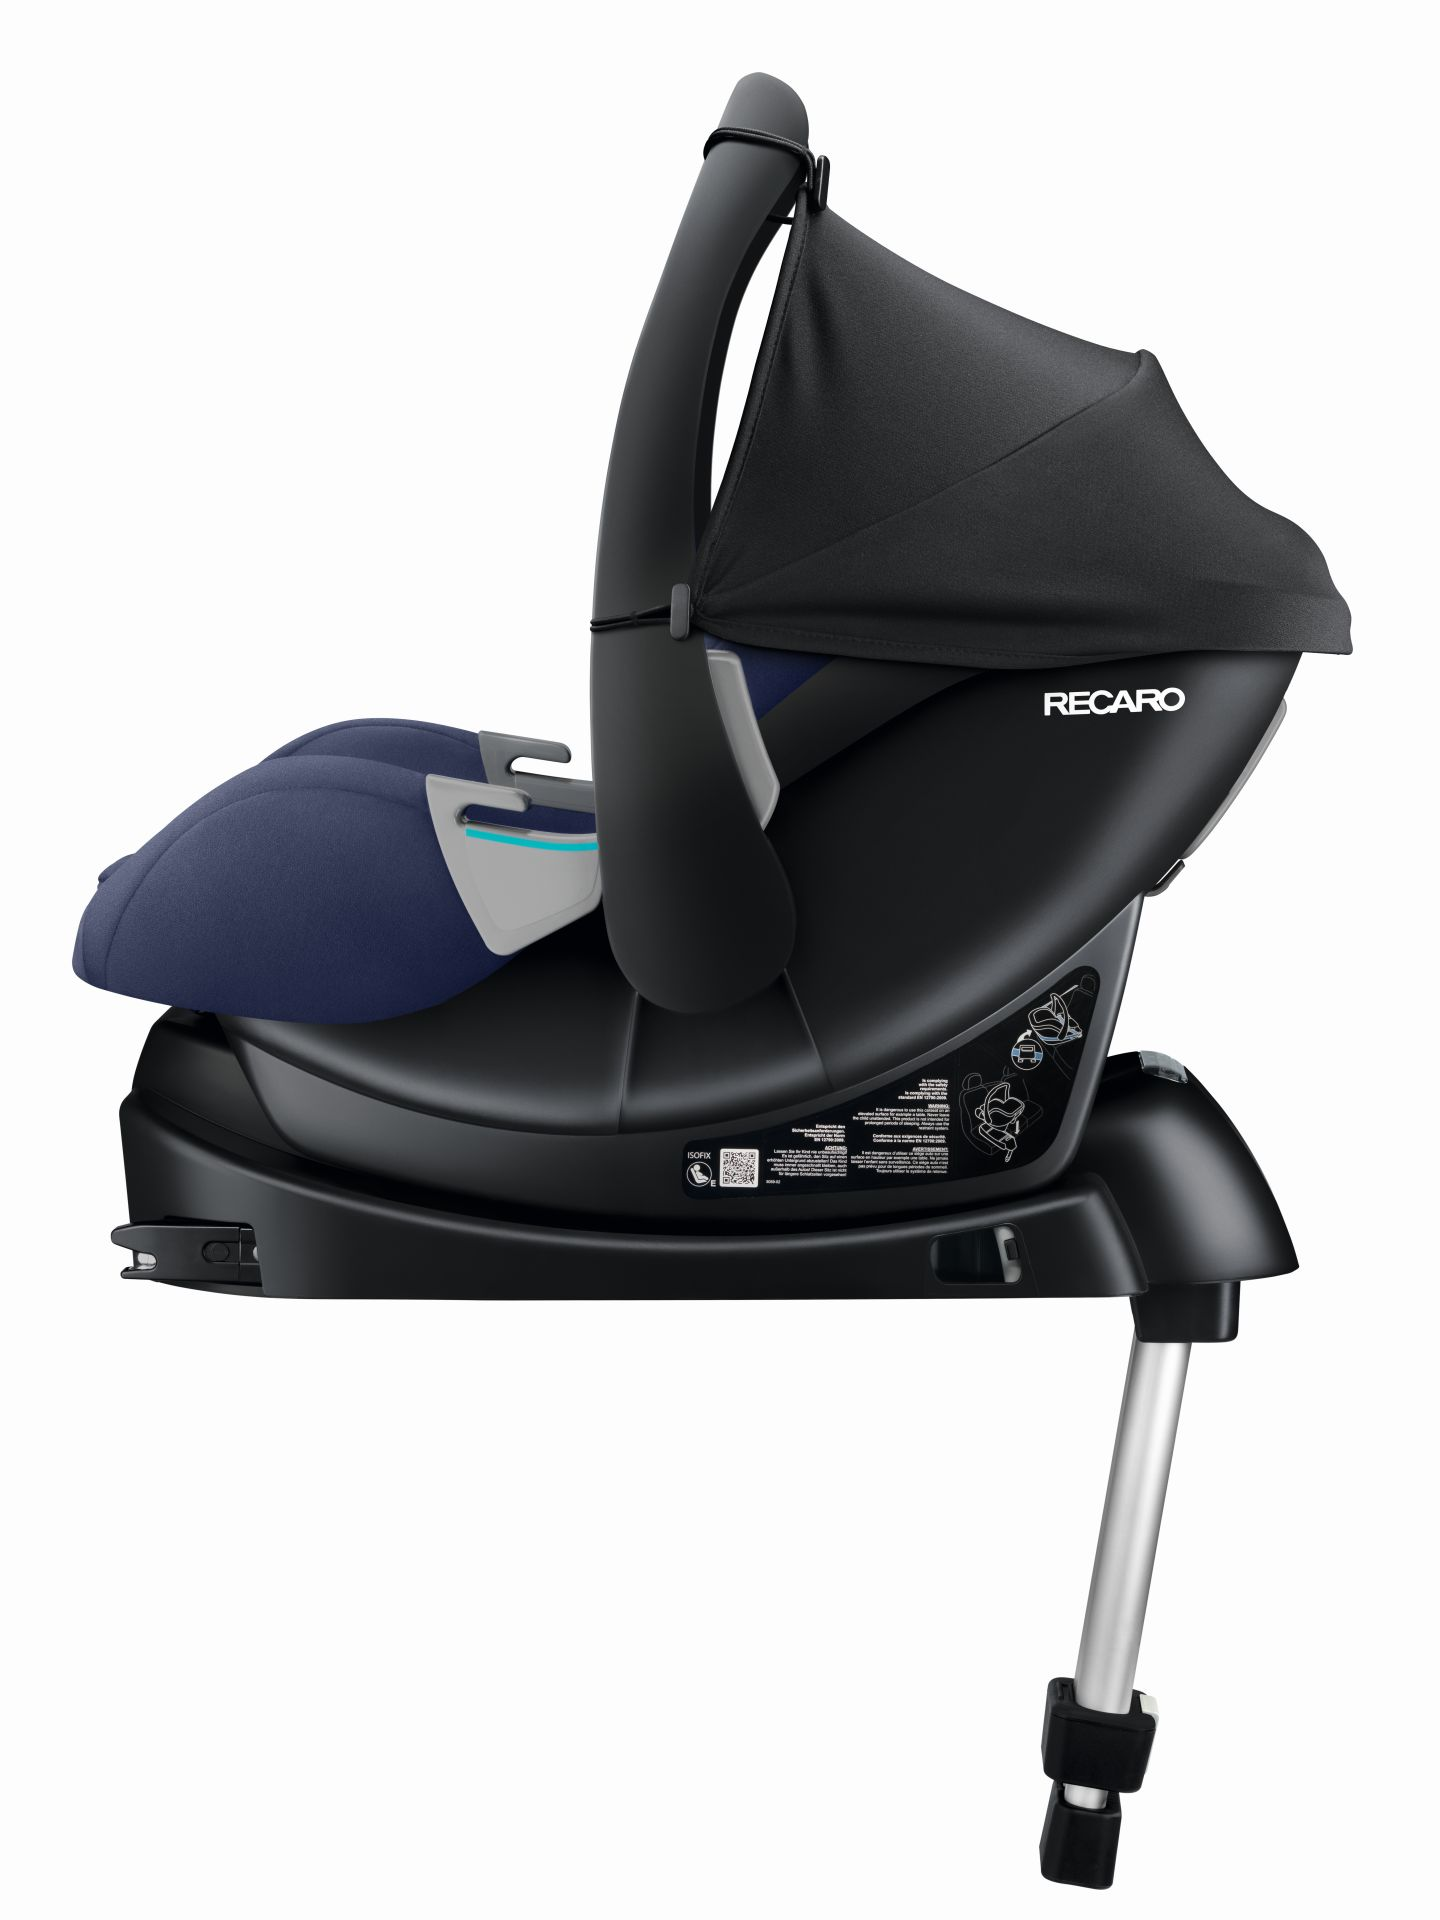 recaro isofix base smartclick basis 2018 buy at kidsroom. Black Bedroom Furniture Sets. Home Design Ideas